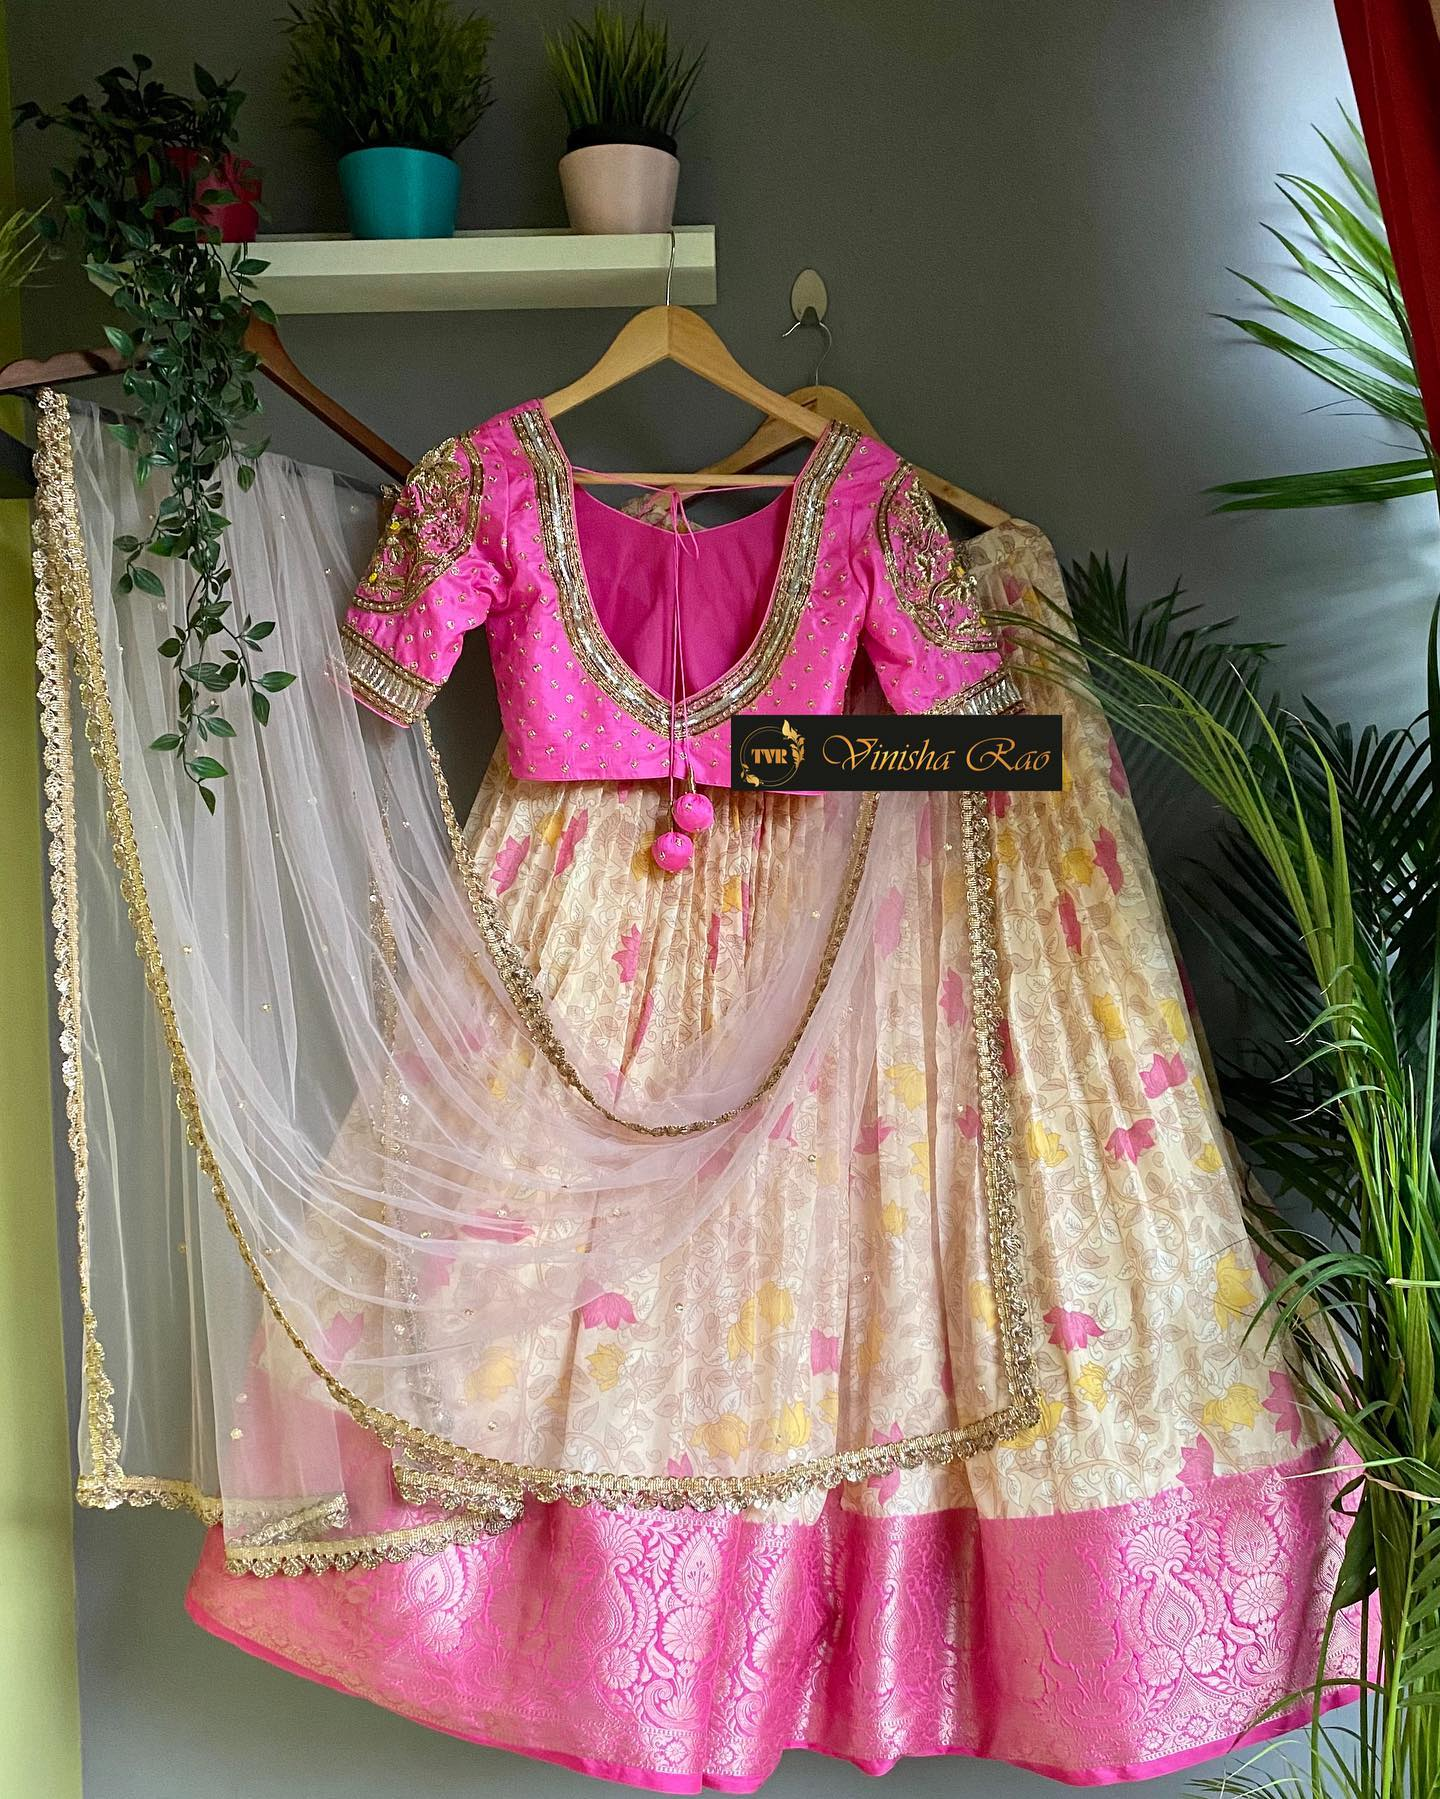 """""""Bridal Lehenga"""" - pastel pink kalamkari lehenga with kanjeevaram pattu border teamed with heavy hand embroiderd pink blouse and lavender dupatta from the house of Vinisha rao designer studio !! Suitable for all kind of occasions !! .. . You can call us to order on  9704994151. . Email - shopvinisharao@gmail.com 2021-08-19"""